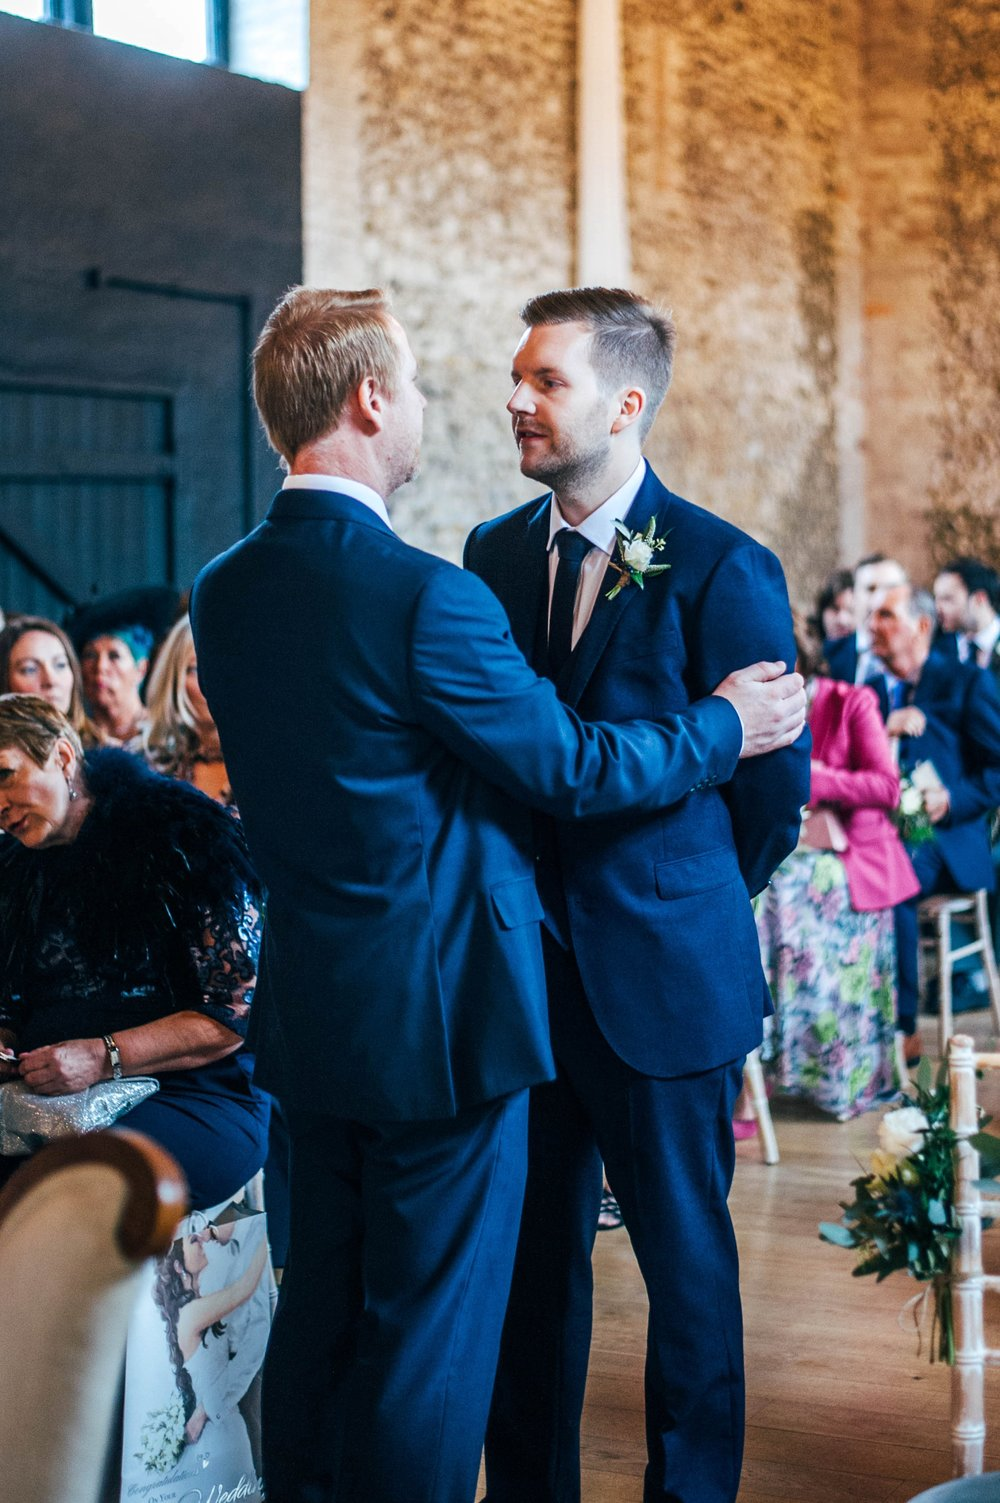 Chic, Stylish, Modern Rustic, Winter Wedding at The Granary Estates, Suffolk. Essex Documentary Wedding Photographer